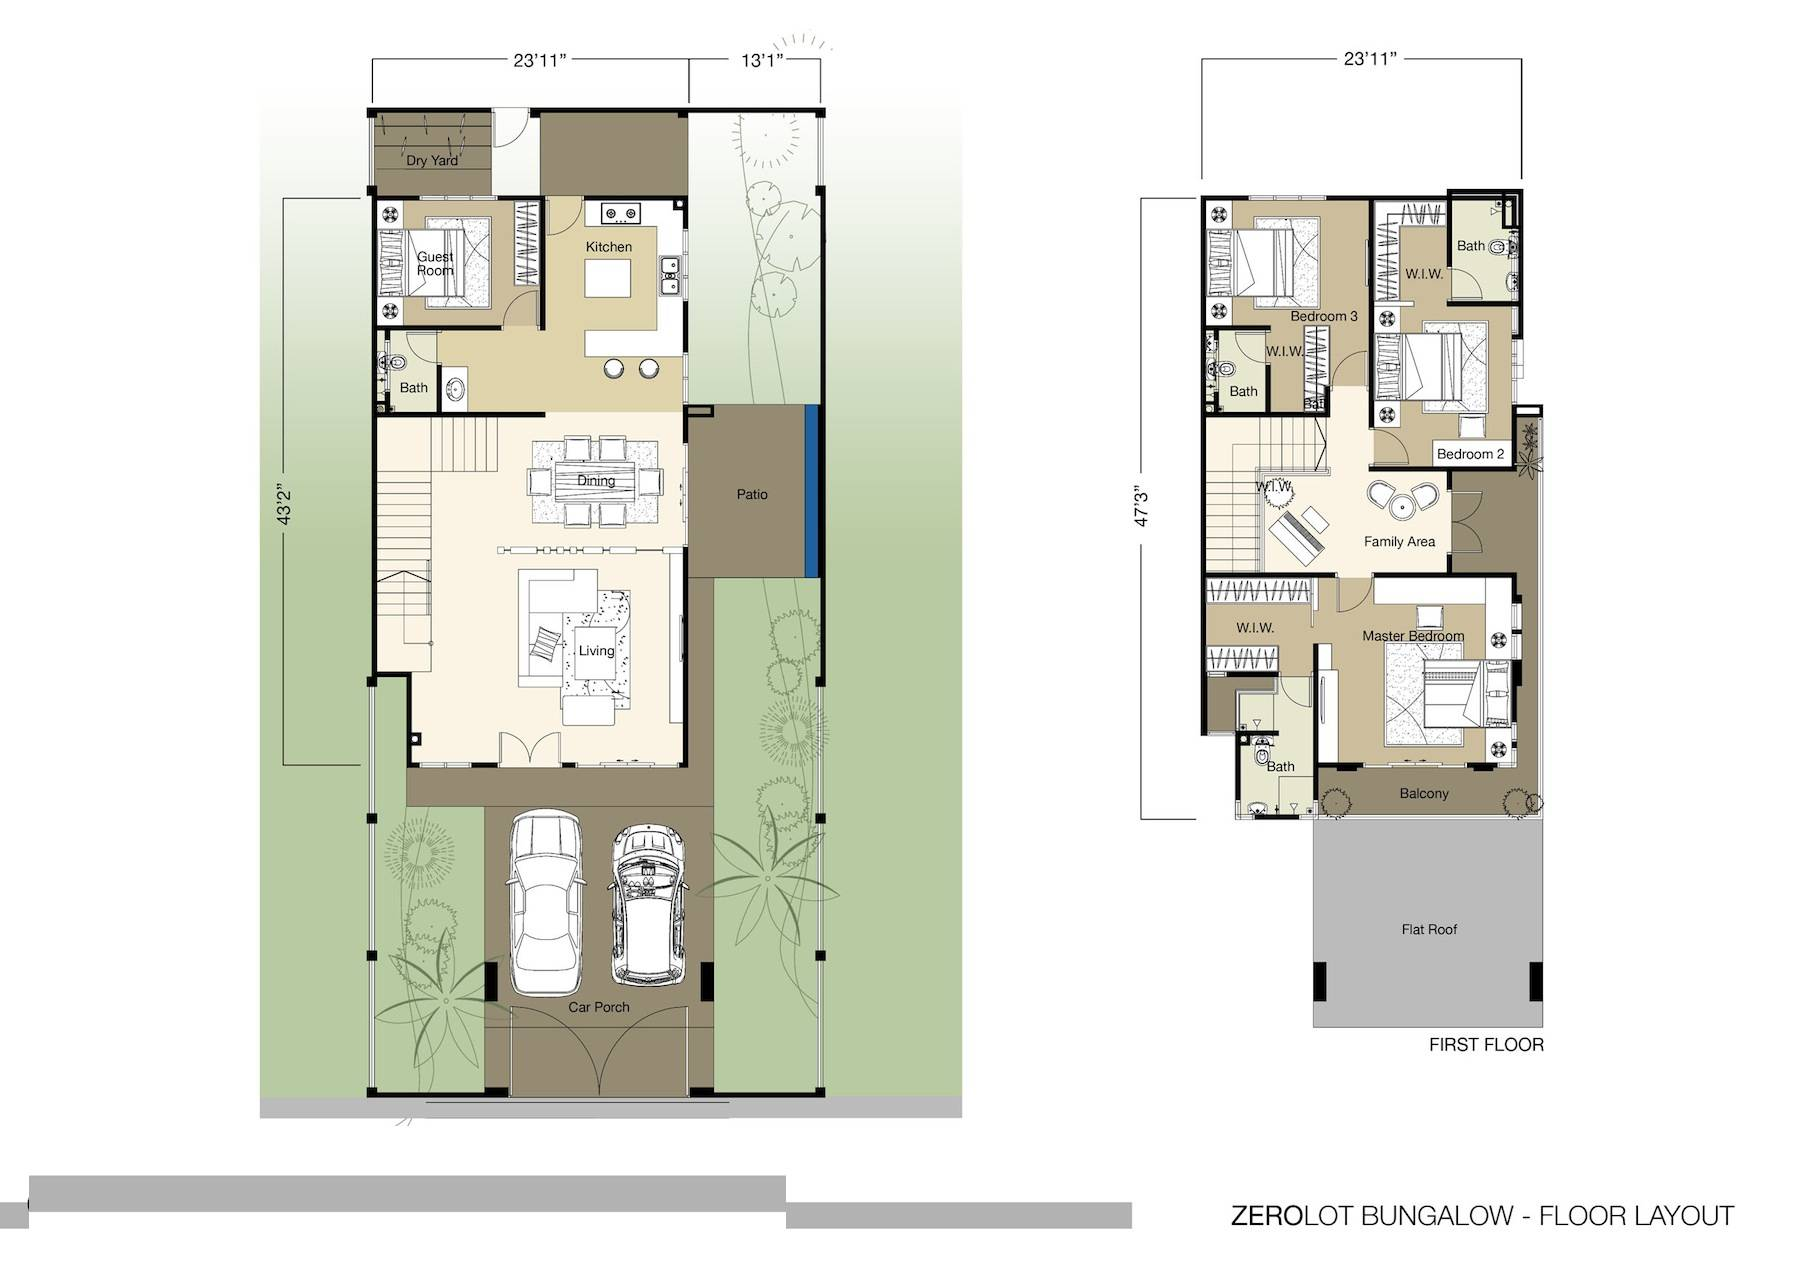 Zero Lot Line Floor Plans 240605 House Plans Home Designs Blog Archive Zero Lot Line House Plans